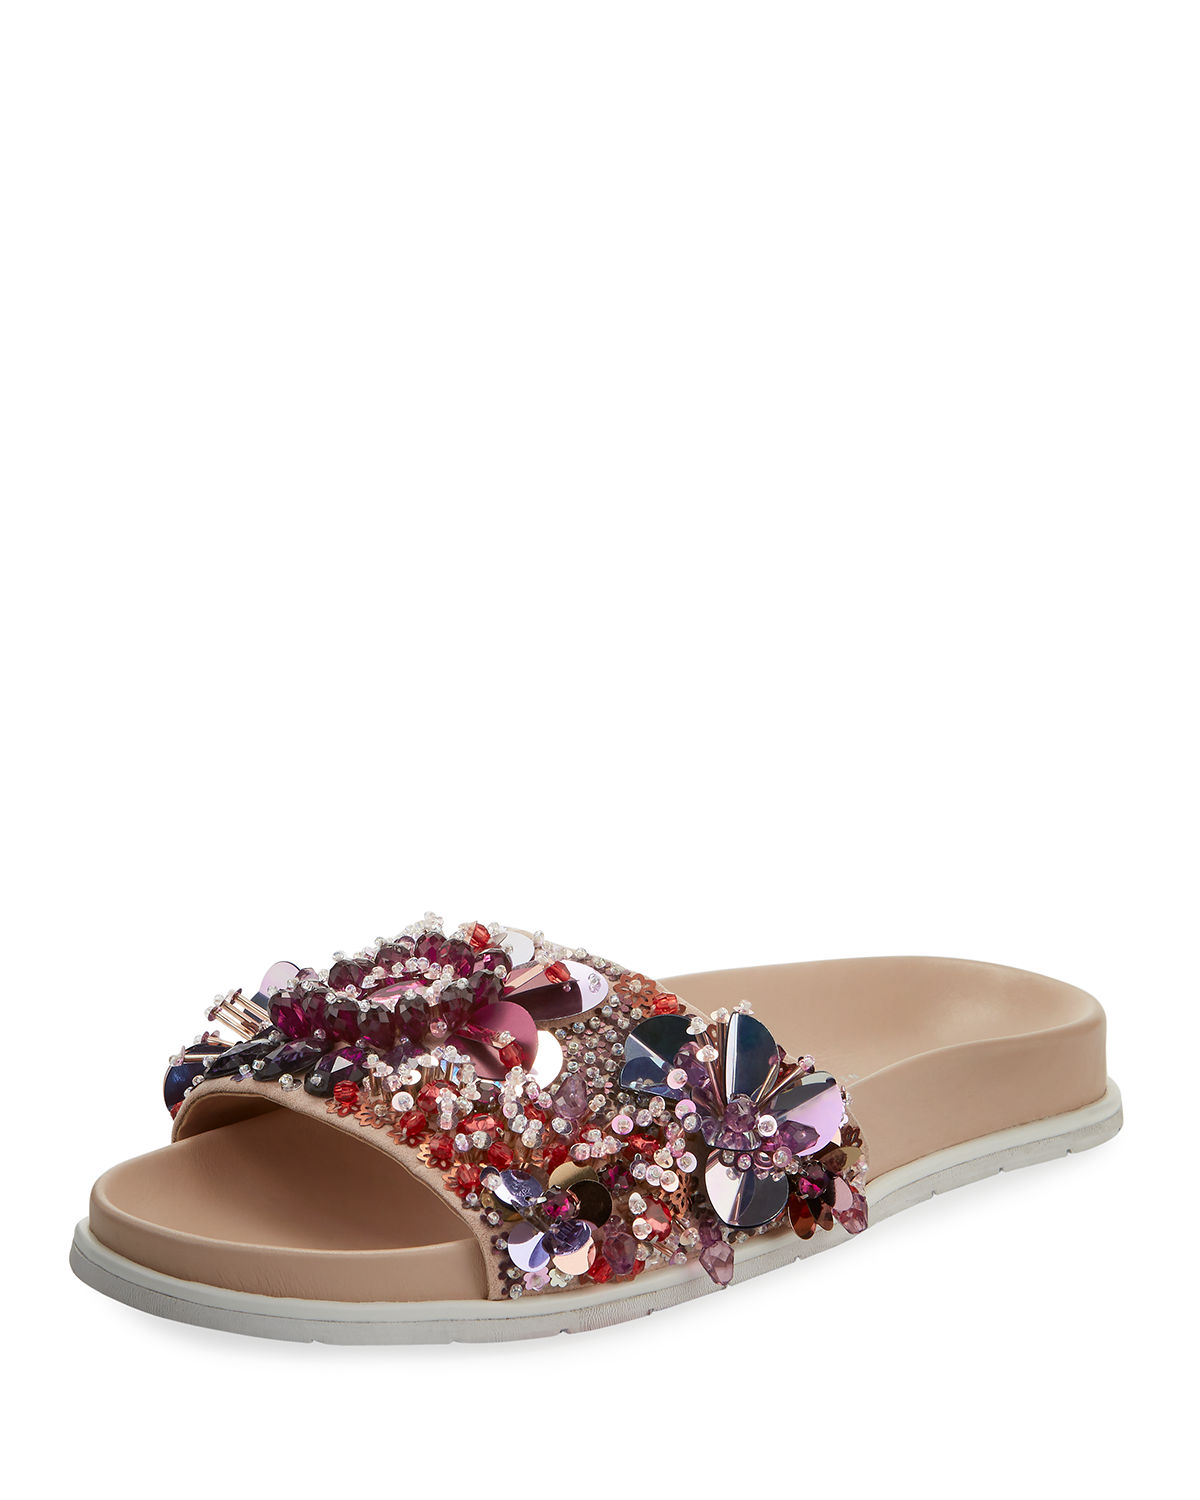 f790d5fceb1a Kenneth Cole Women s Xenia Sequin-Embellished Pool Slide Sandals In Pink  Multi